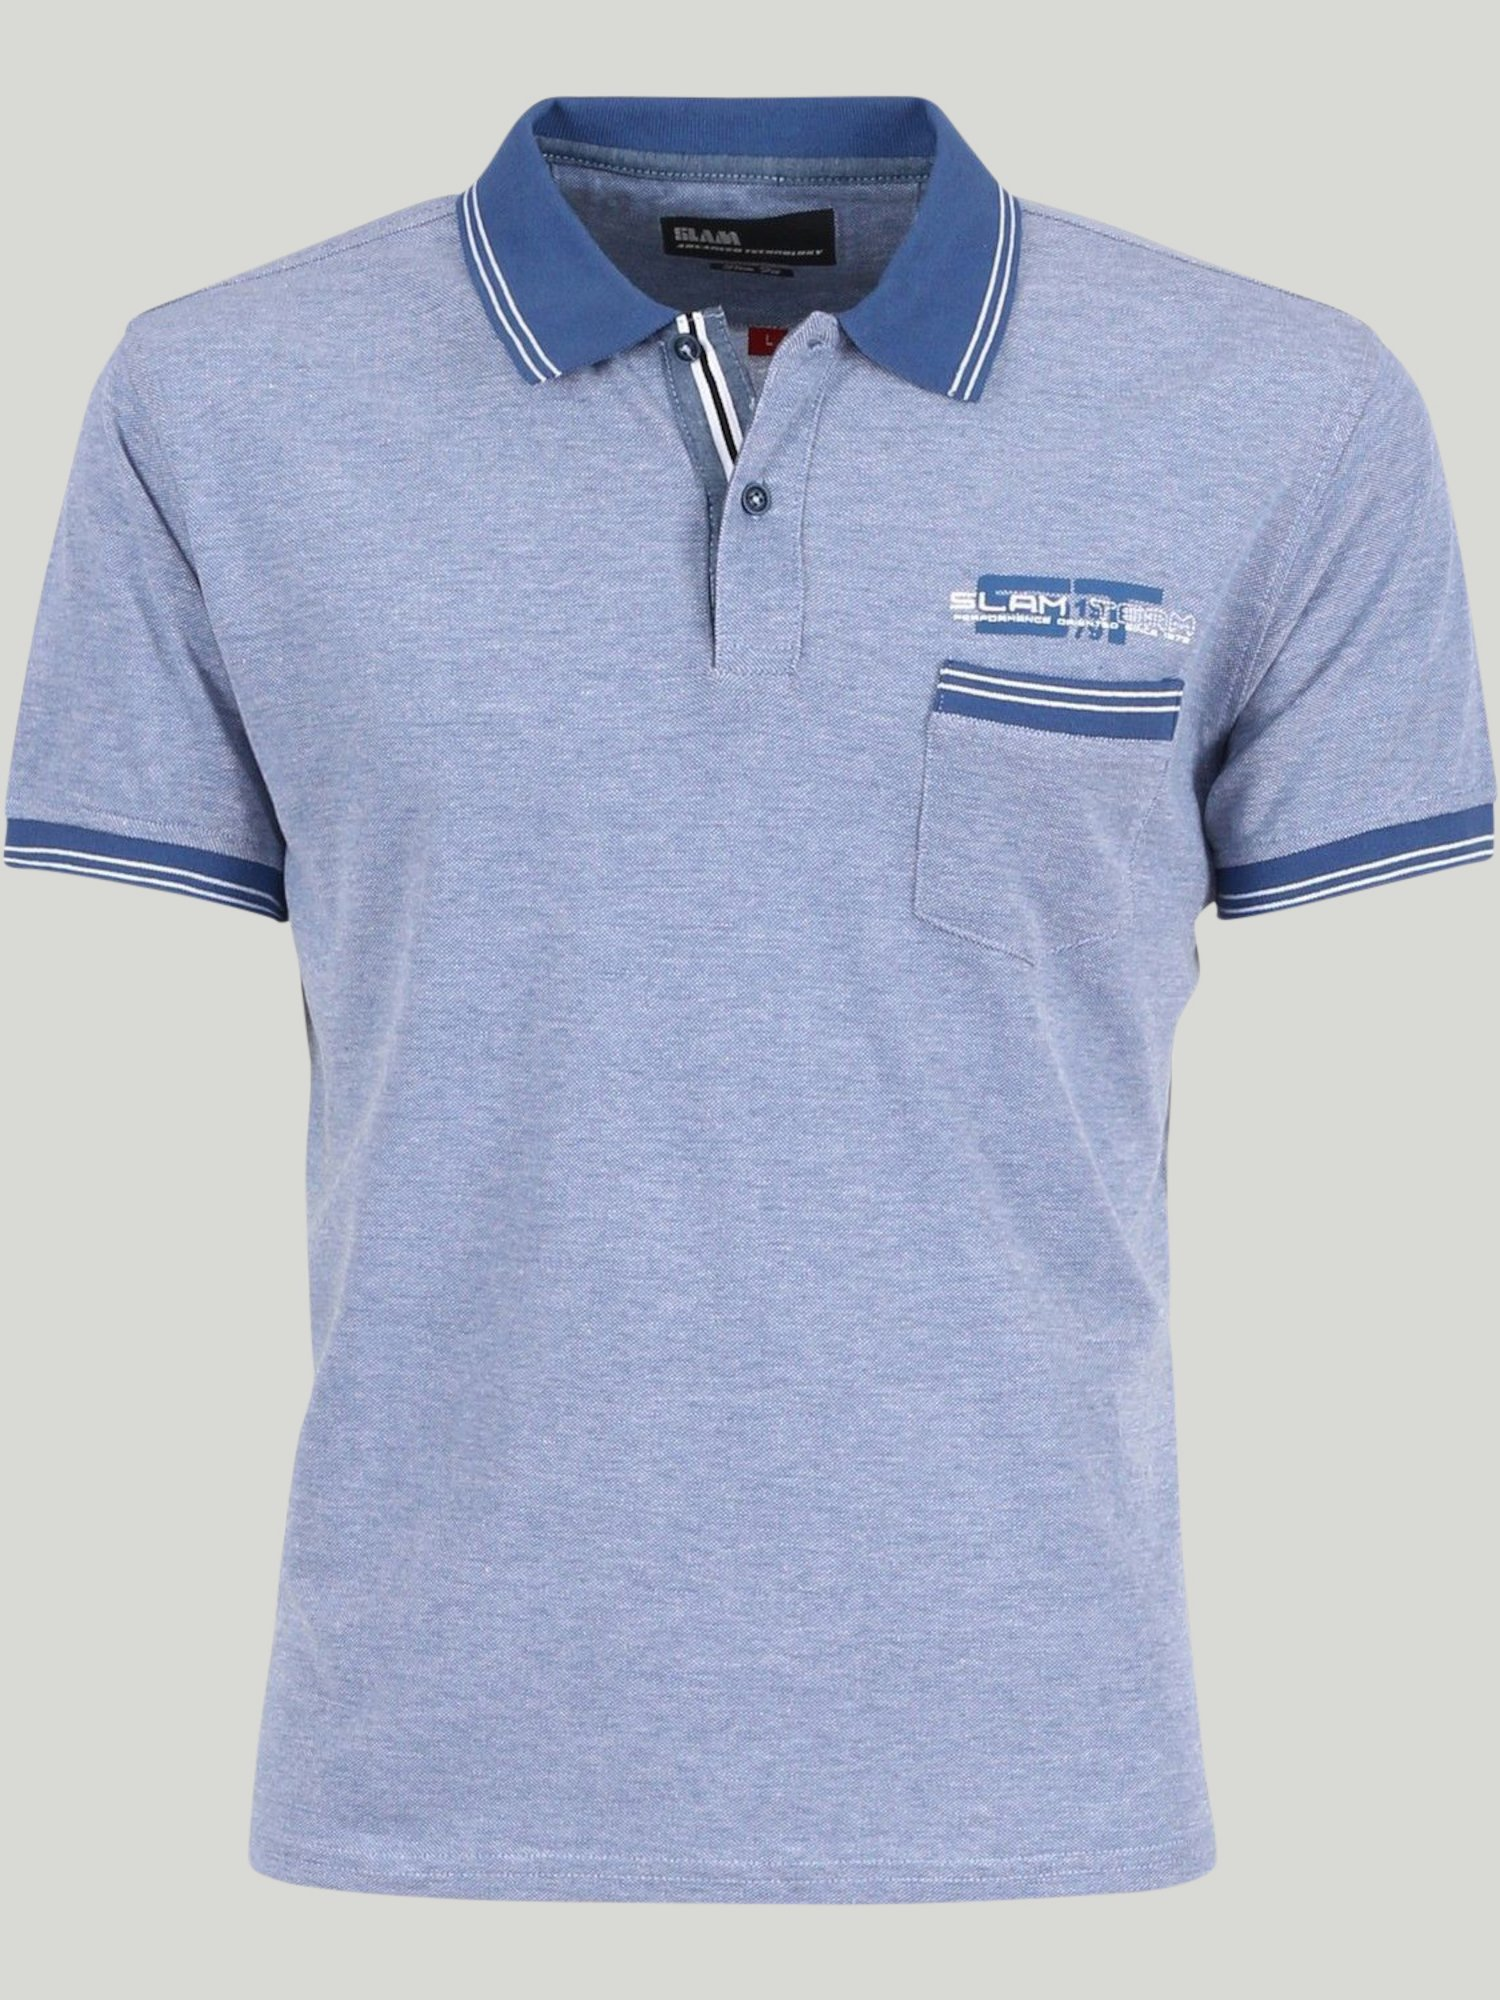 Why Not polo shirt - Delft